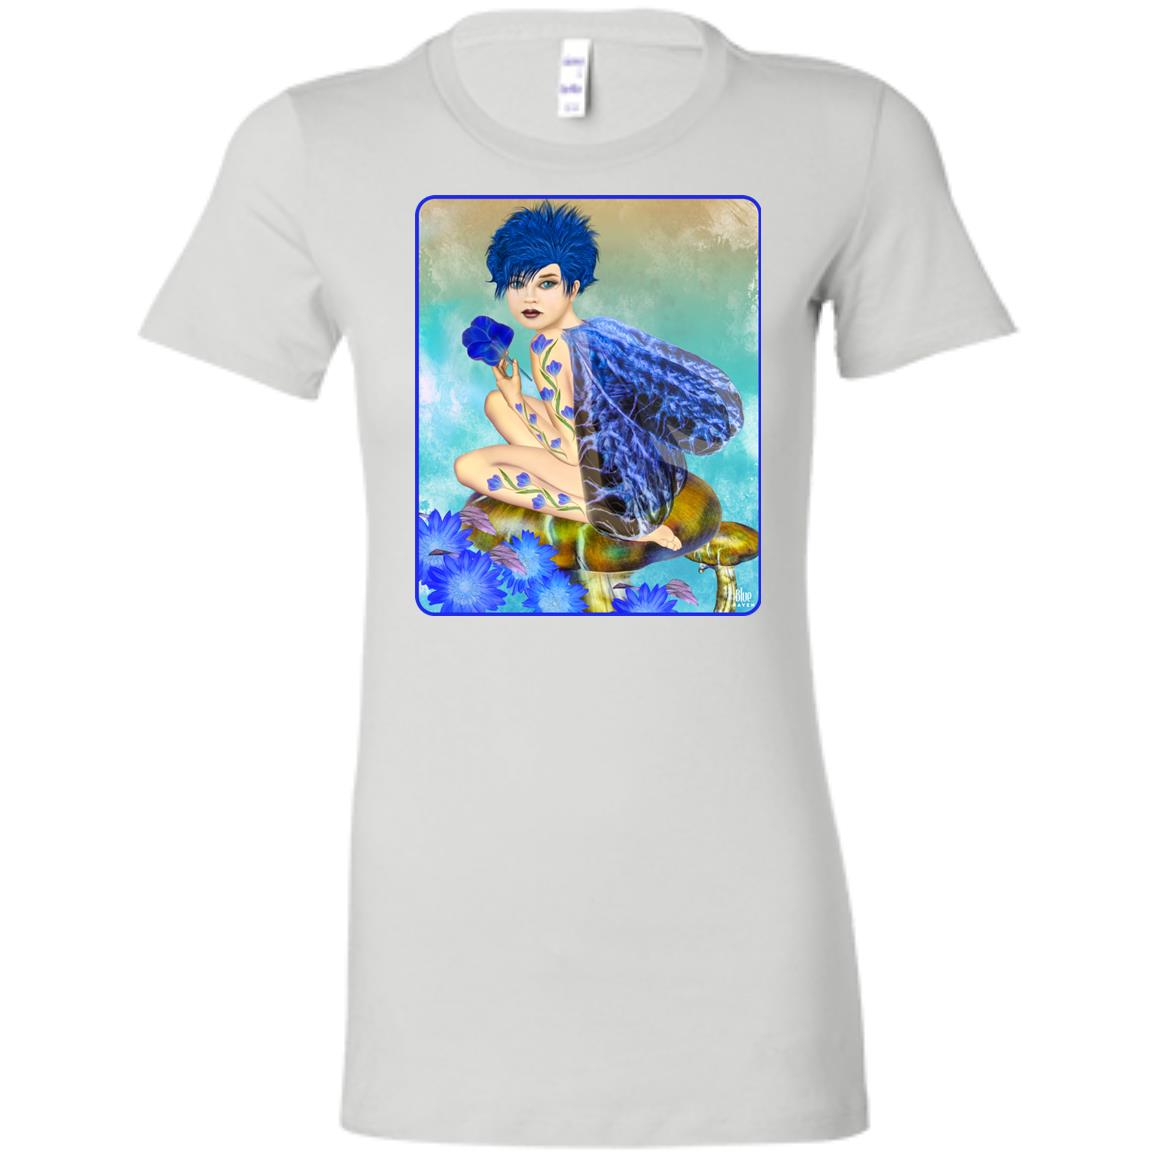 Blue Fairy 2 - Women's Fitted T-Shirt